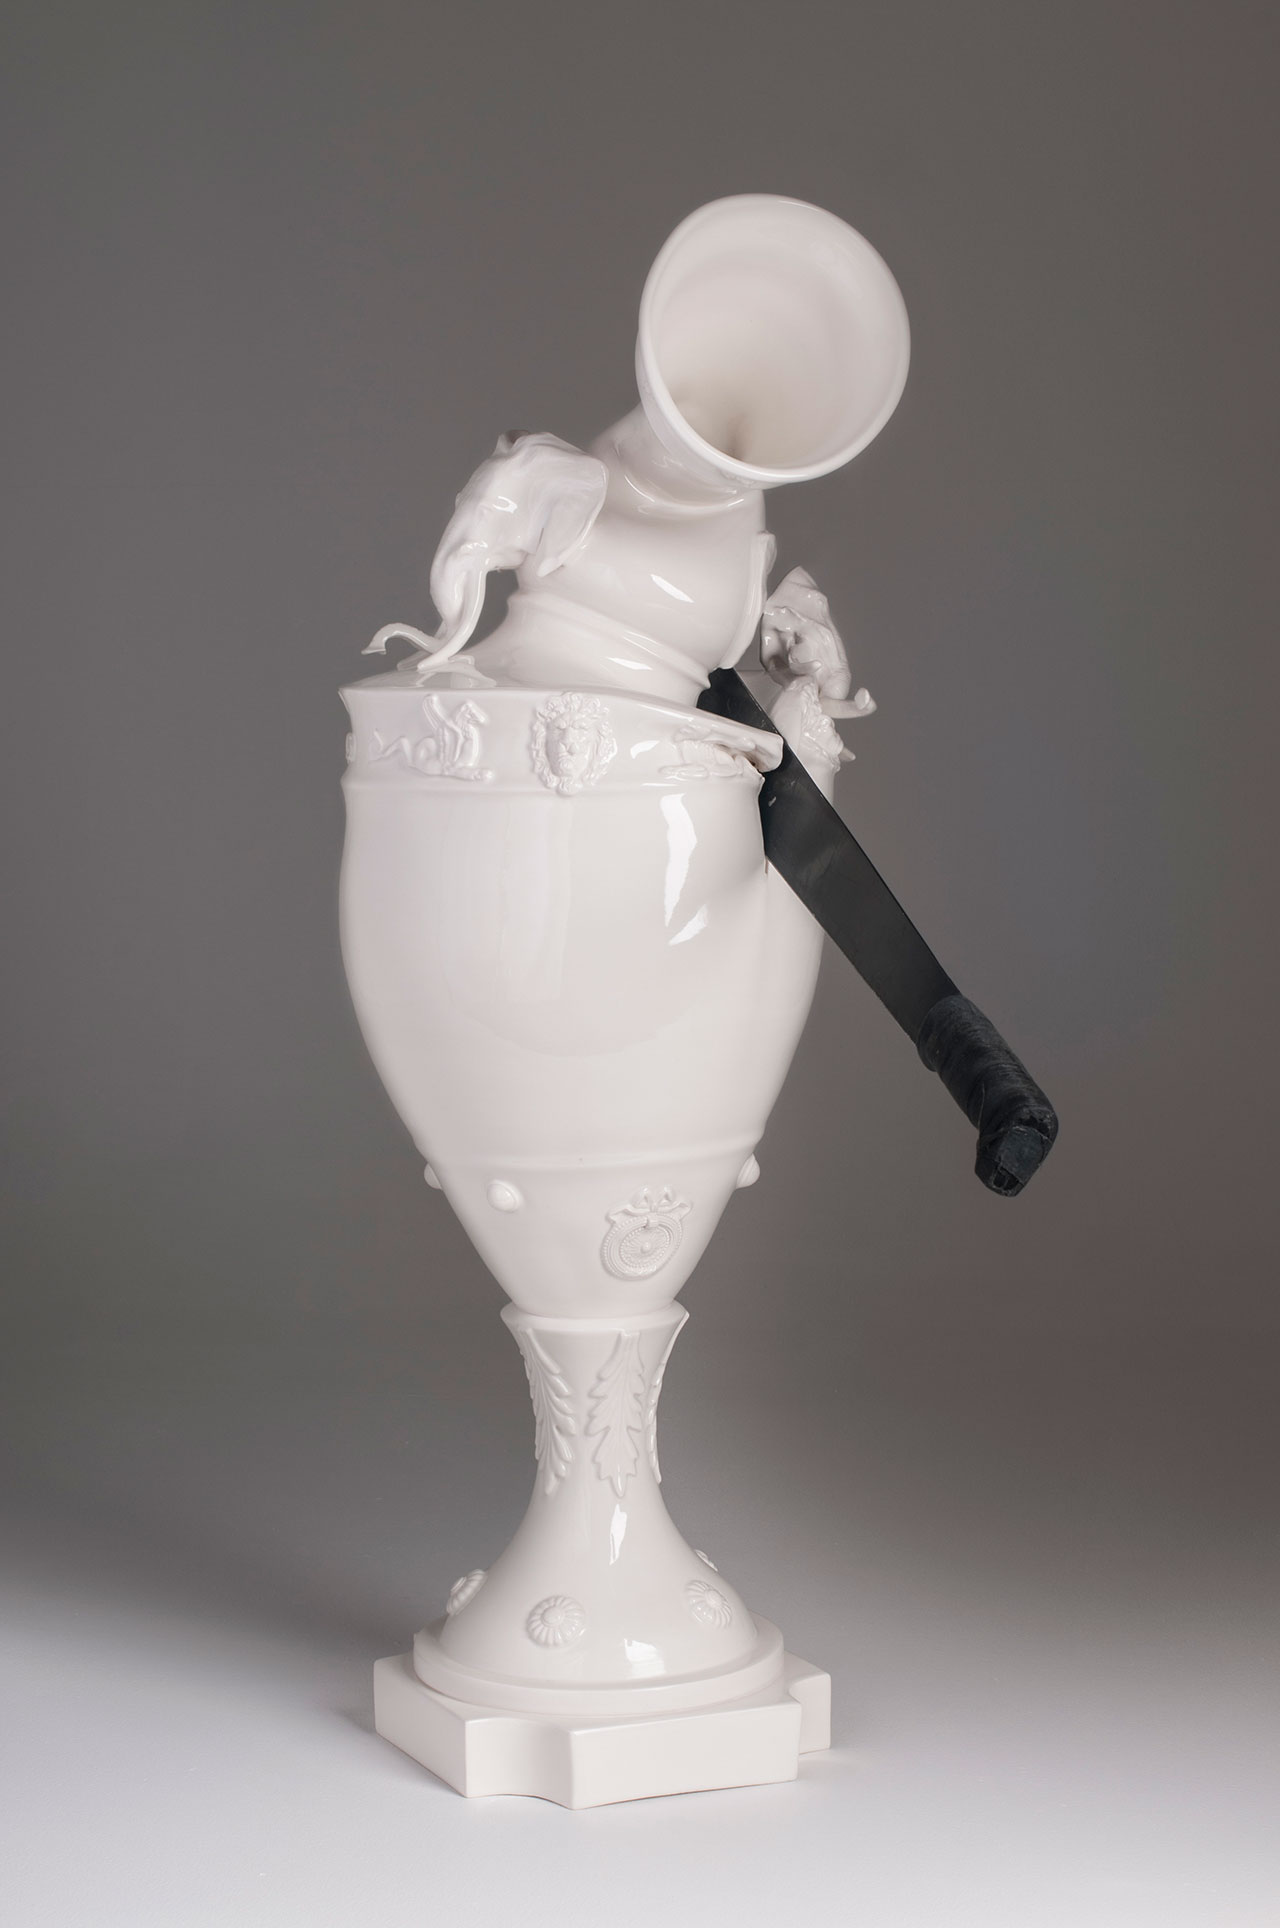 Craste Laurent, Style colonial, 2012. Porcelain, glaze, machete, 86.5 x 31 x 31.5 cm. Claridge collection.